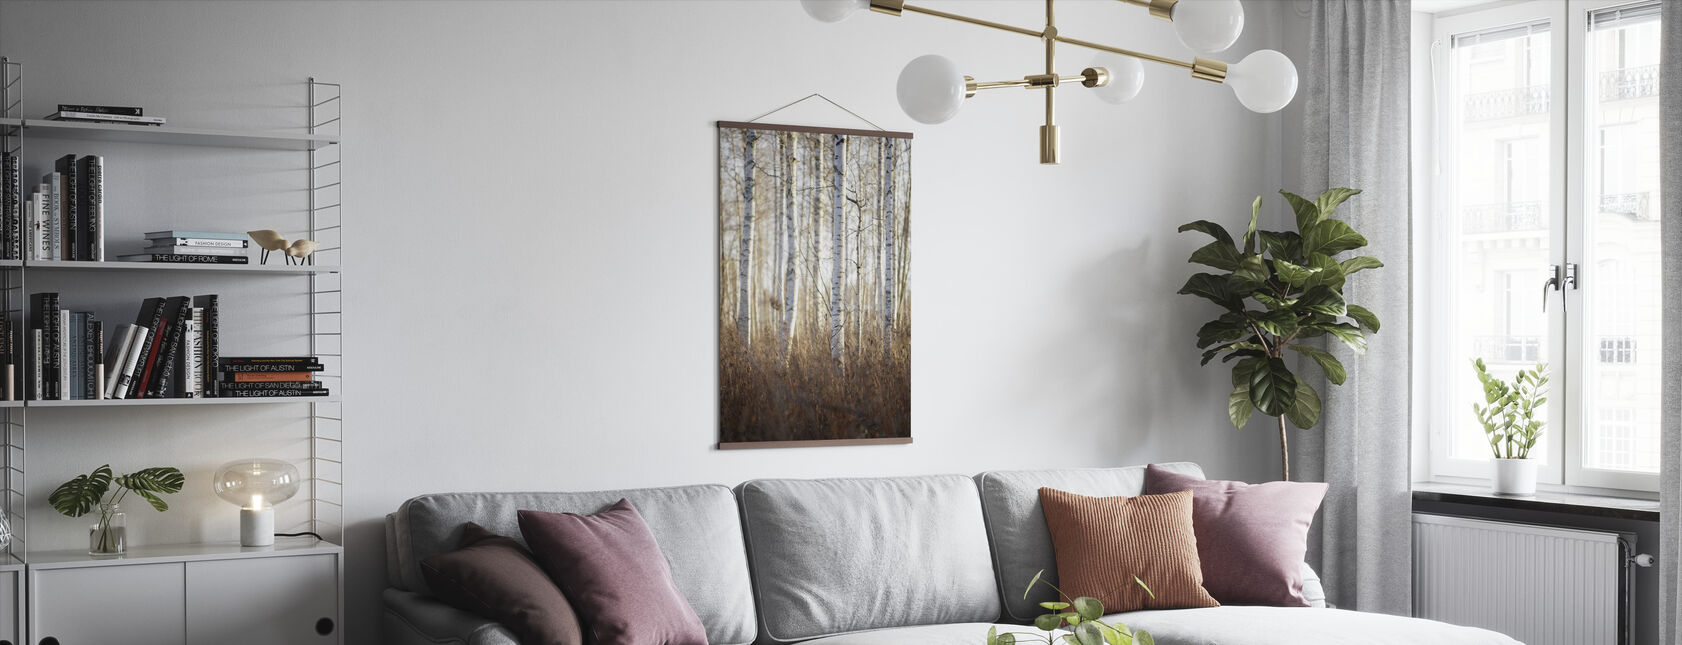 Birch Forest in Dalarna, Sweden, Europe - Poster - Living Room